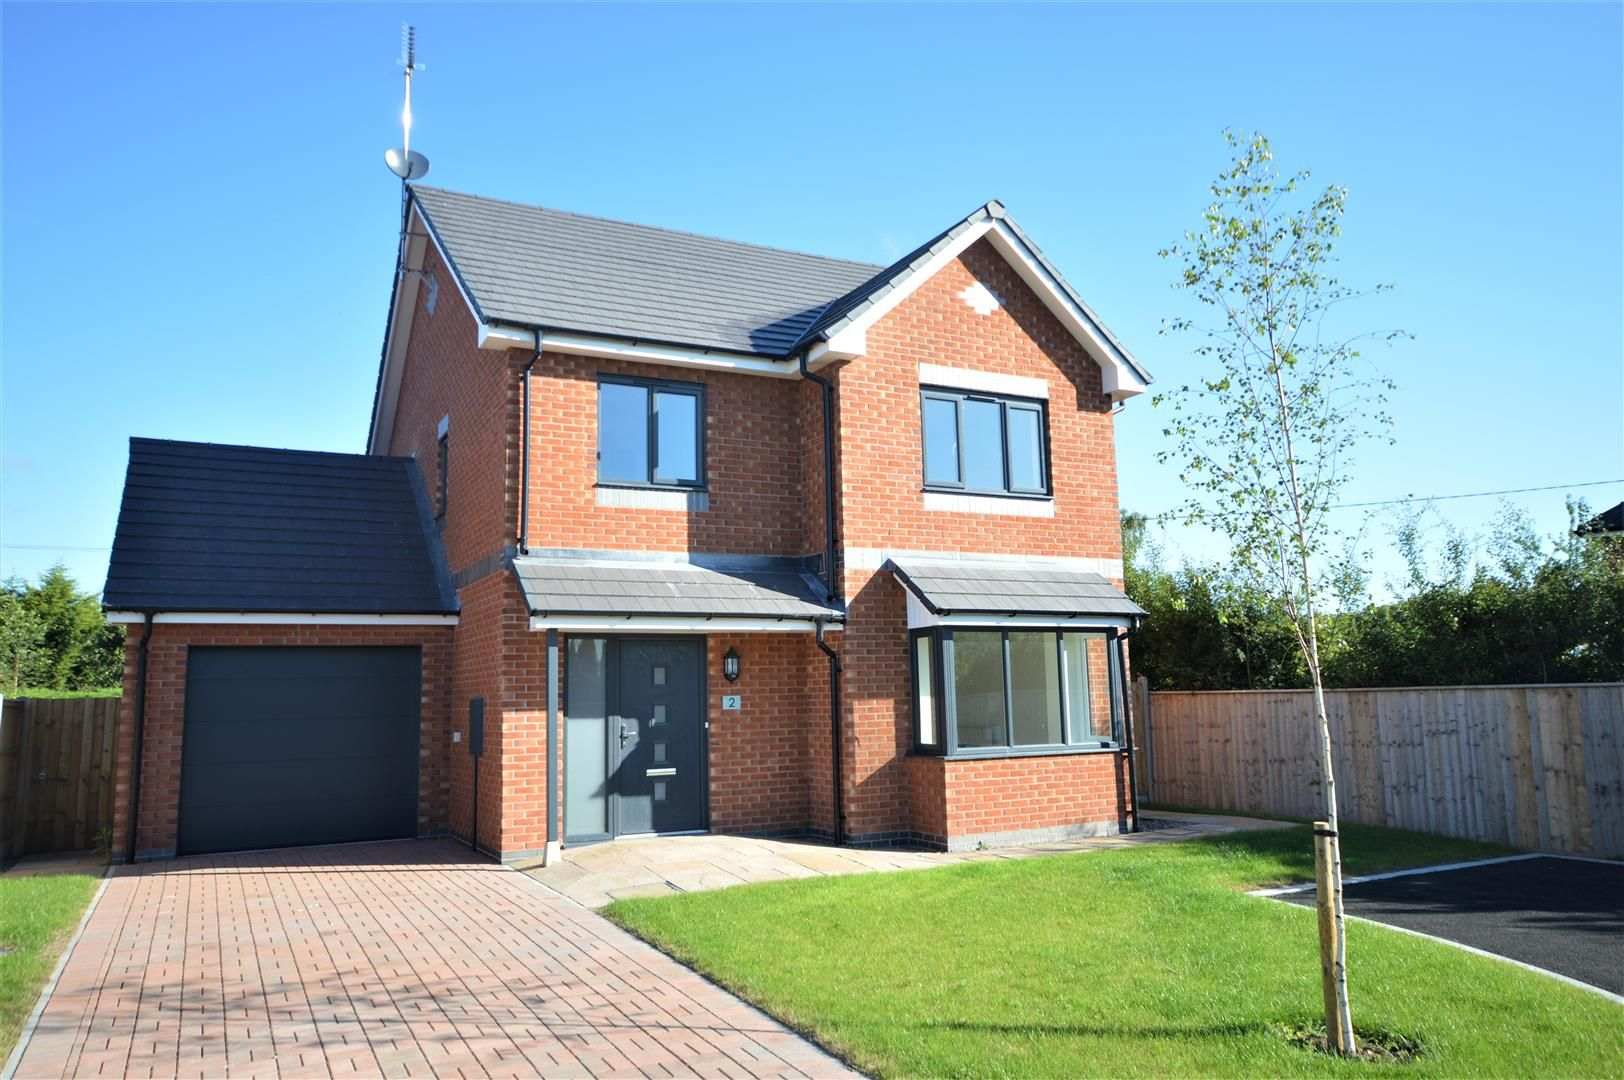 3 bed detached for sale in Kingsland, HR6